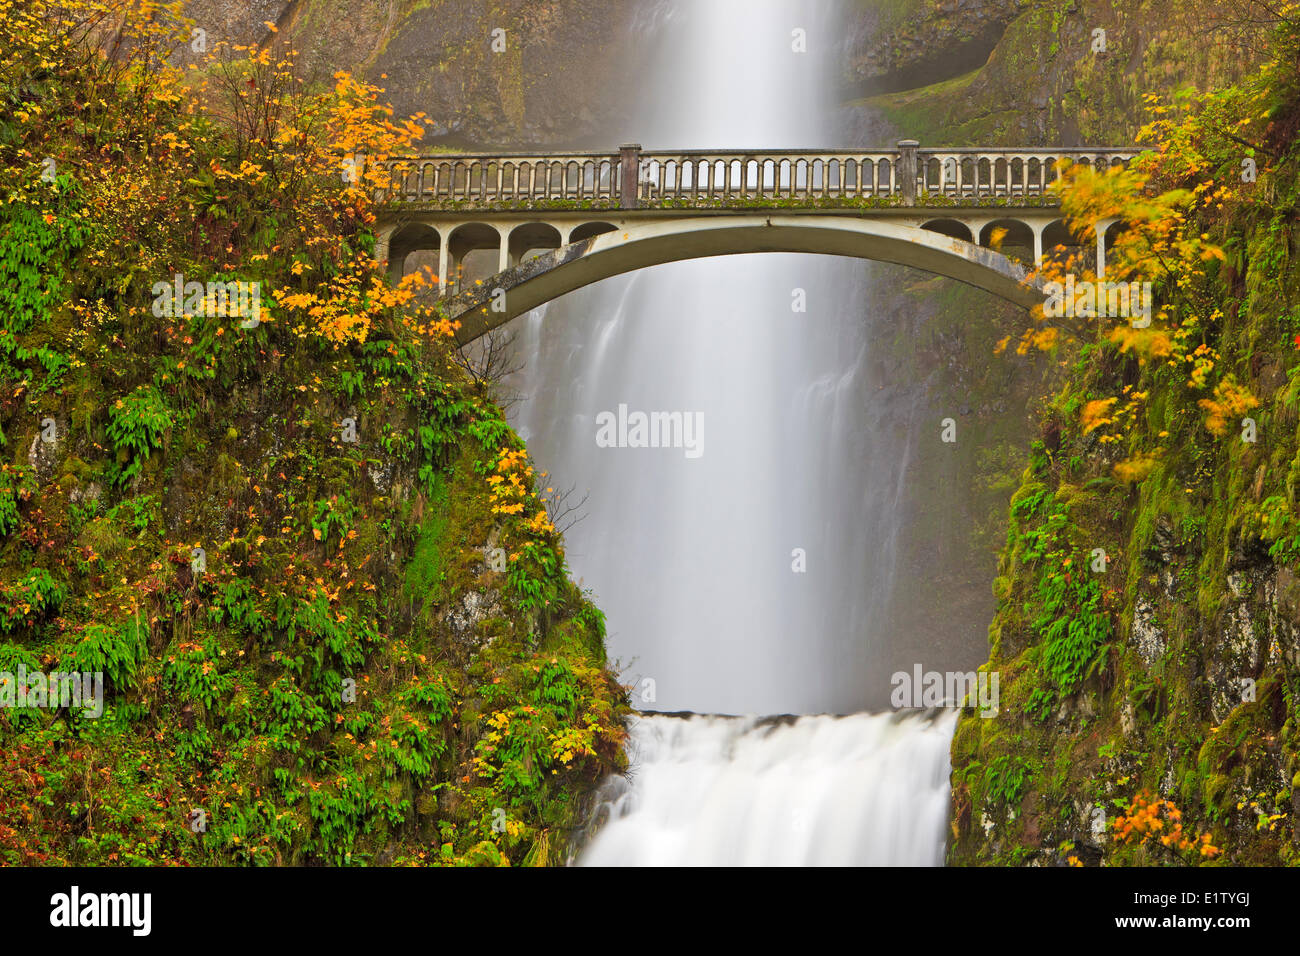 Tourist attraction Multnomah Falls a 611-foot-tall roaring awe-inspiring cascading waterfall in late fall with Benson - Stock Image